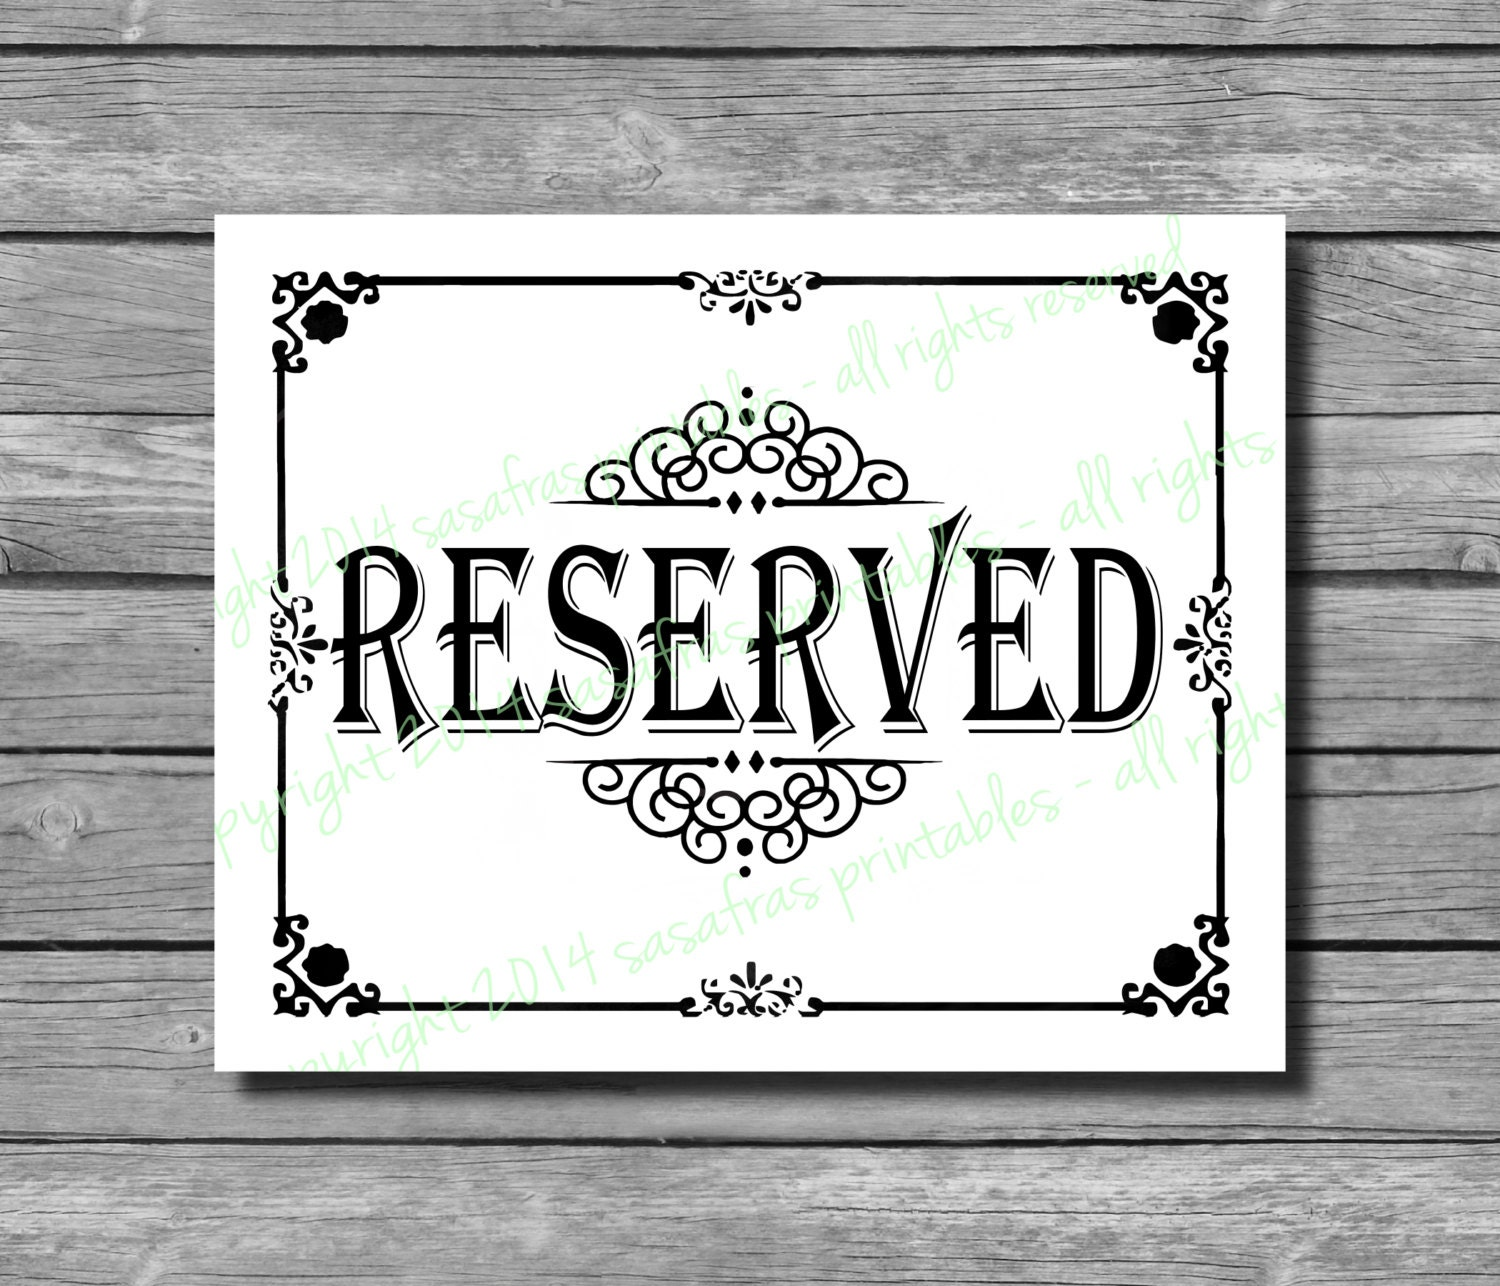 It's just an image of Genius Printable Reserved Signs